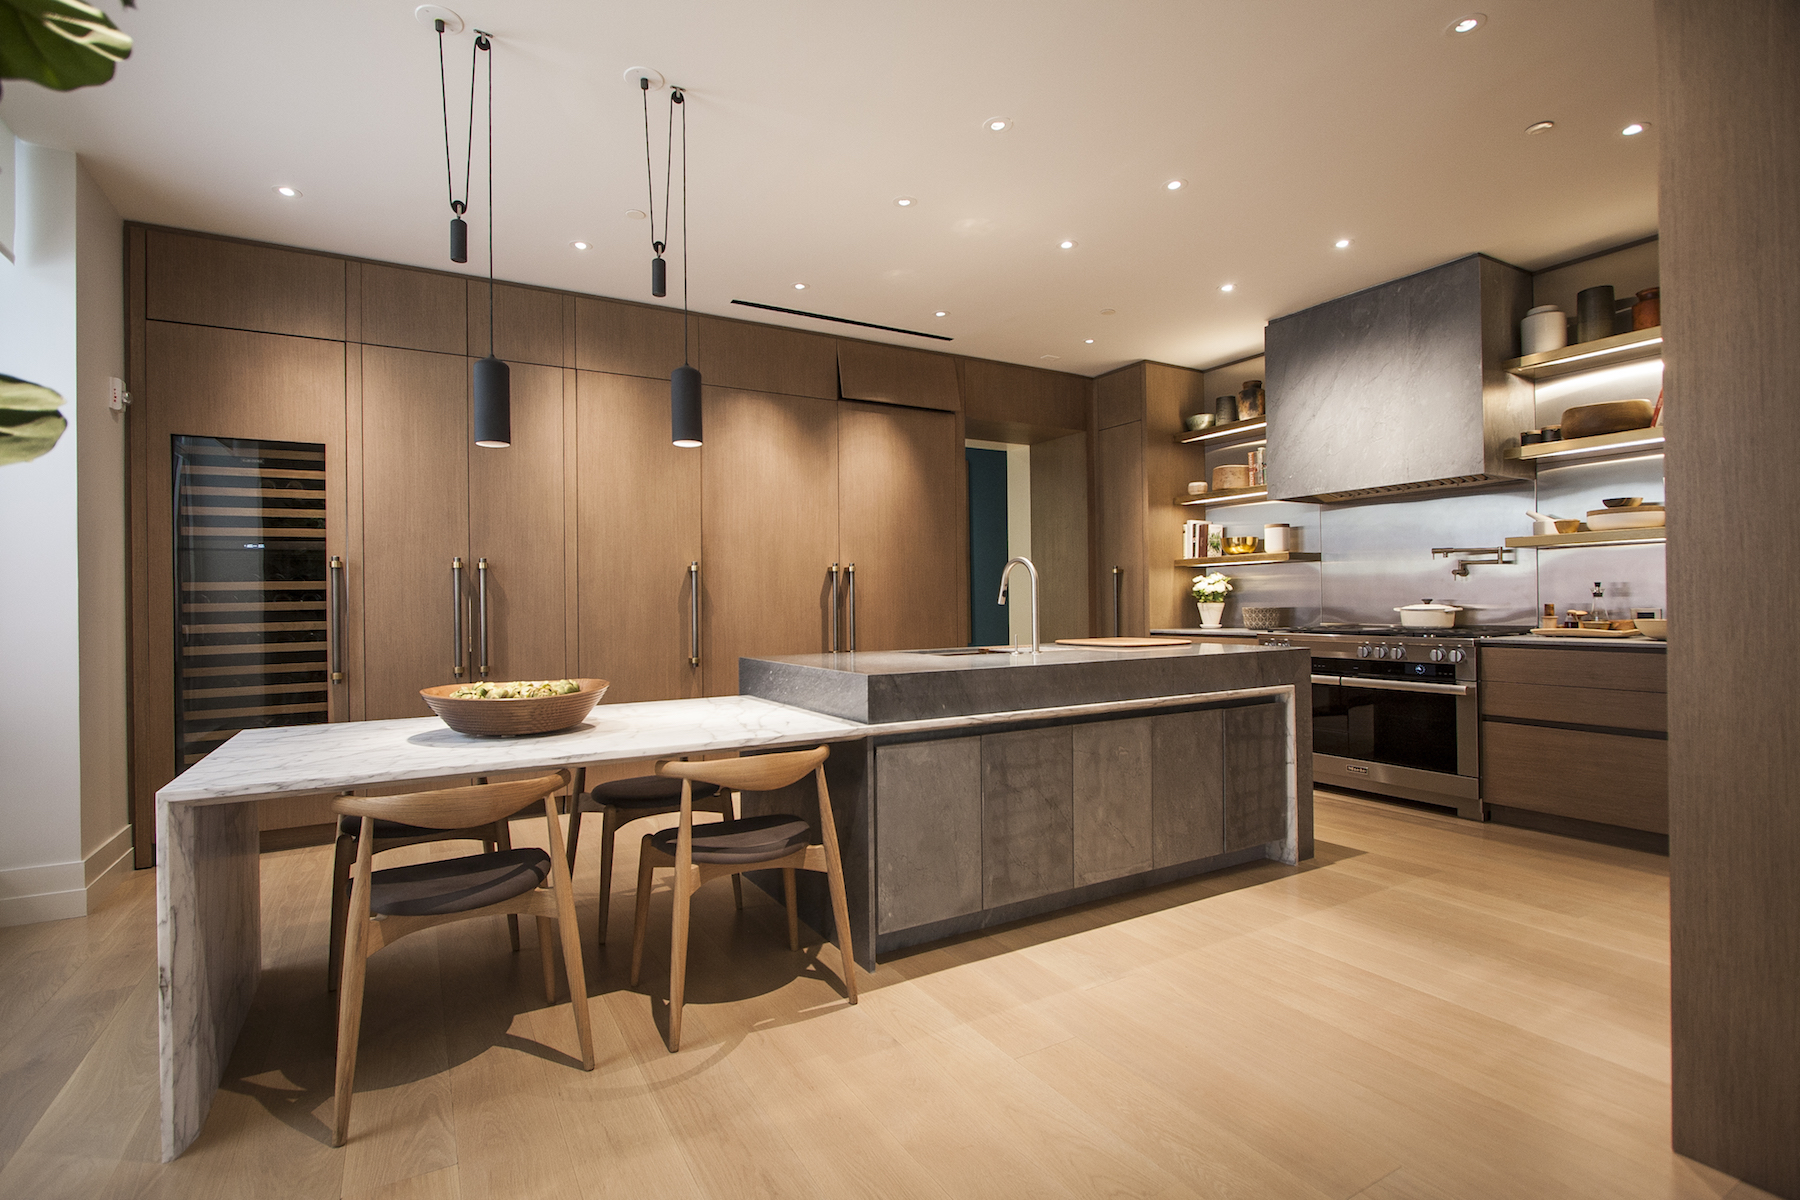 Kitchen Sales Designer Jobs Kitchen Sales Designer Jobs Kitchen Sales Designer Jobs